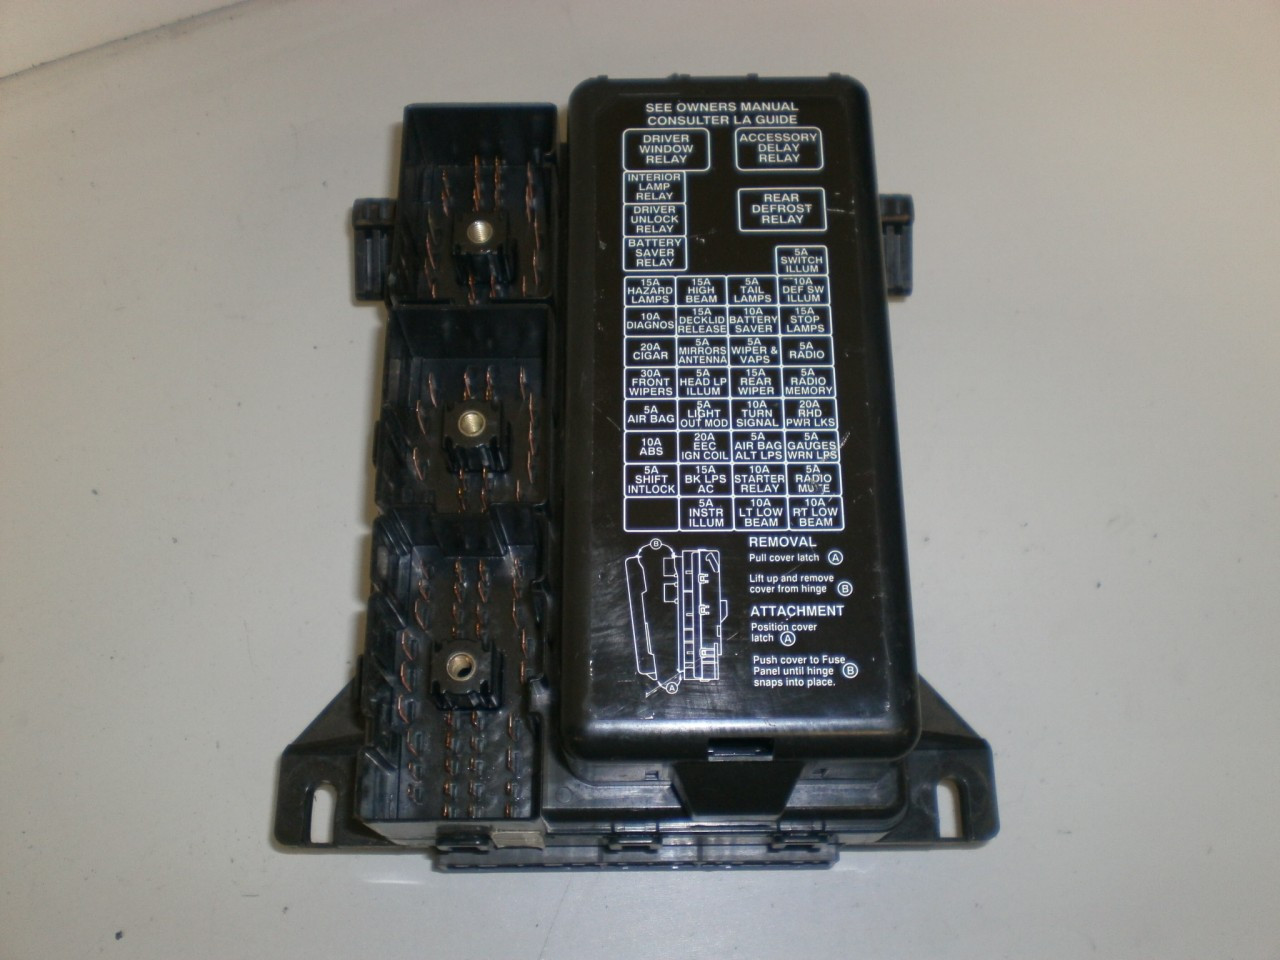 2000 chrysler lhs fuse box on 2000 images free download wiring 2000 Chrysler Concorde Fuse Box Diagram ford taurus fuse box diagram 2006 chrysler pt cruiser fuse box 2000 ford focus fuse box 2000 chrysler concorde fuse box diagram